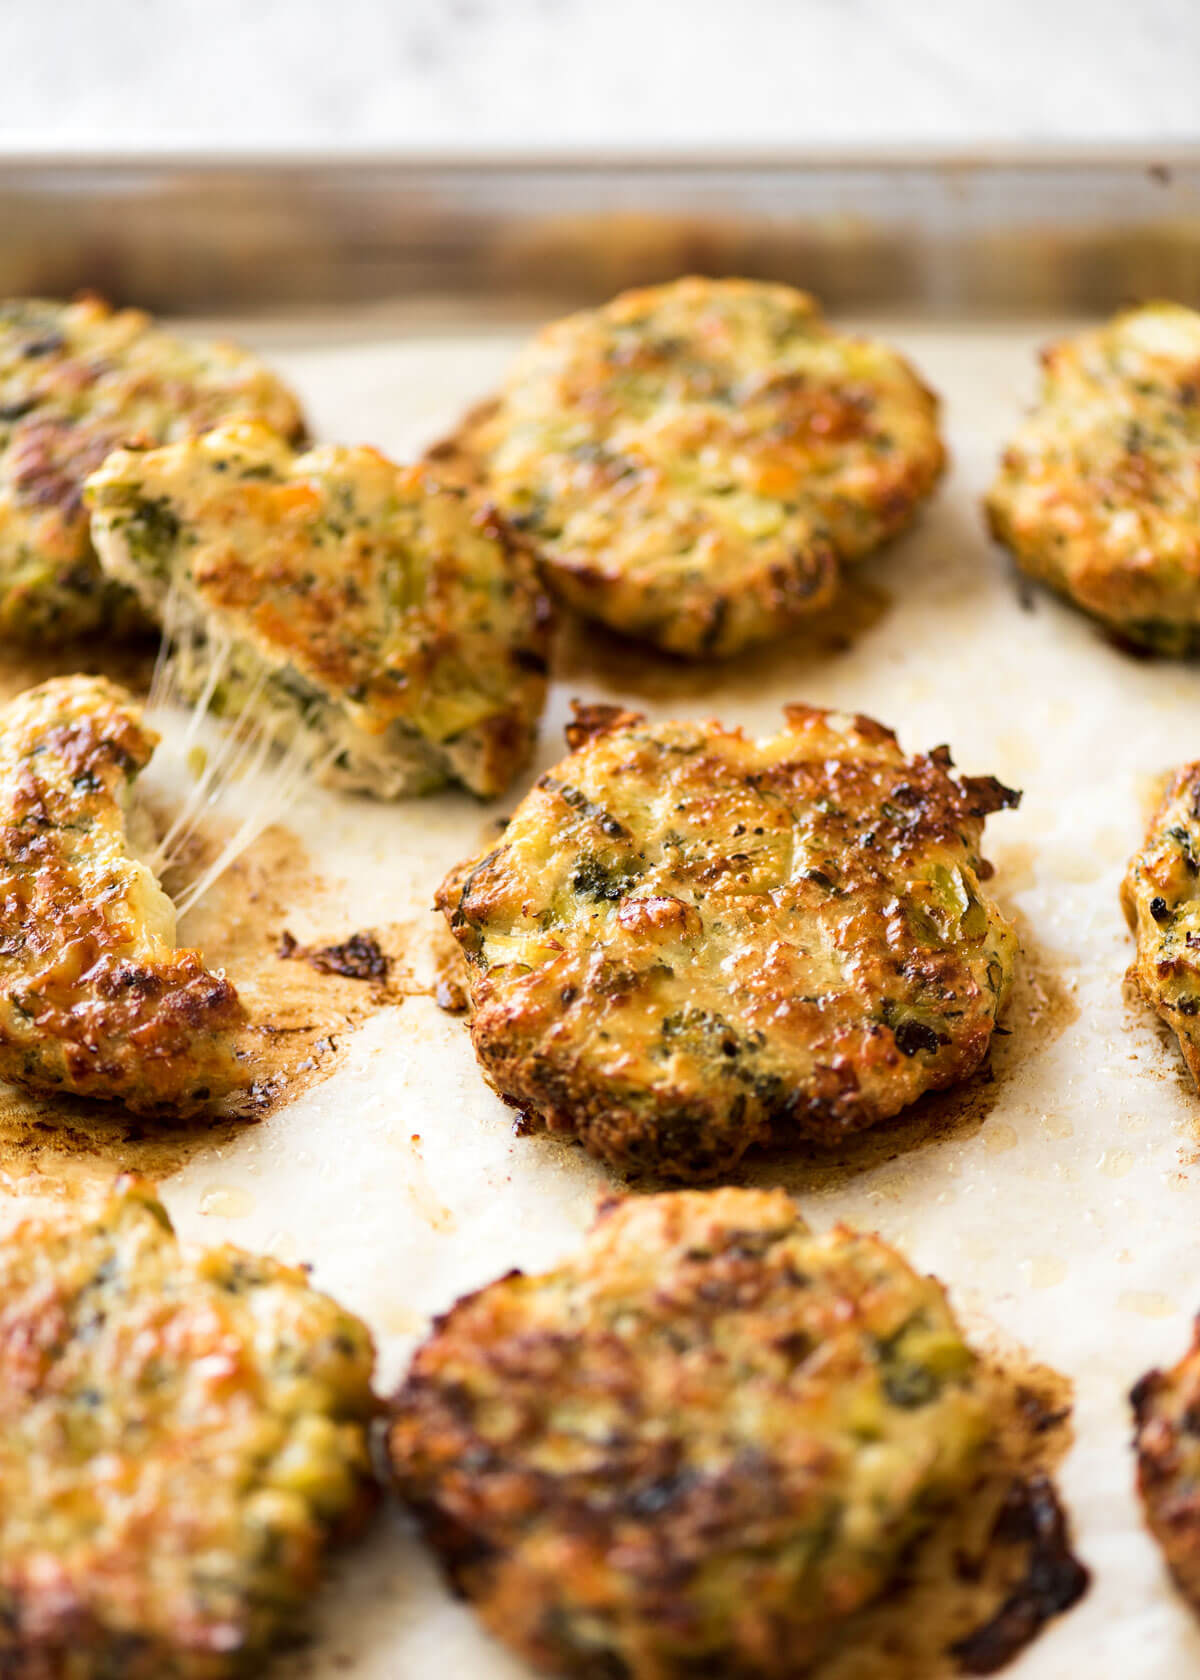 Baked Cheesy Broccoli Chicken Patties | RecipeTin Eats